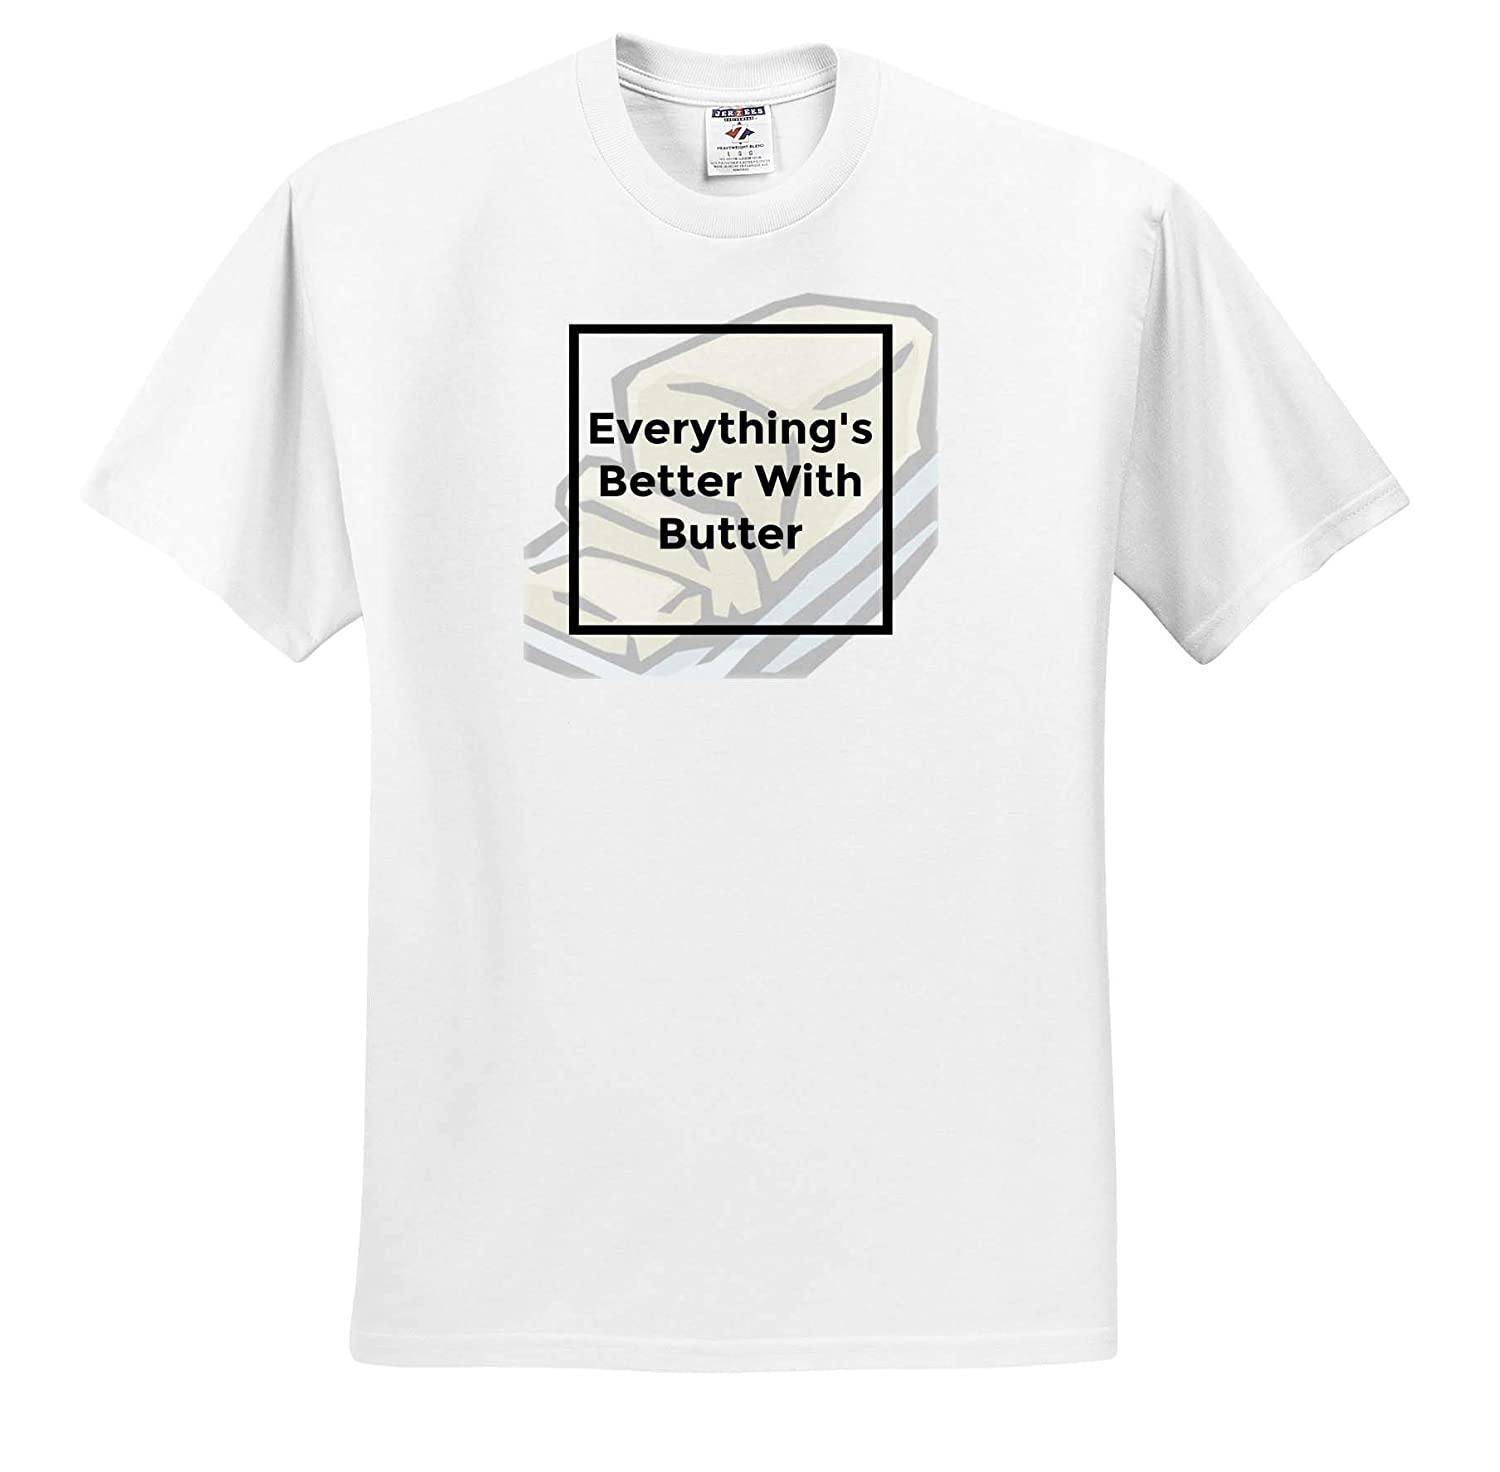 ts/_319354 Adult T-Shirt XL 3dRose Carrie Quote Image Image of Everythings Better with Butter